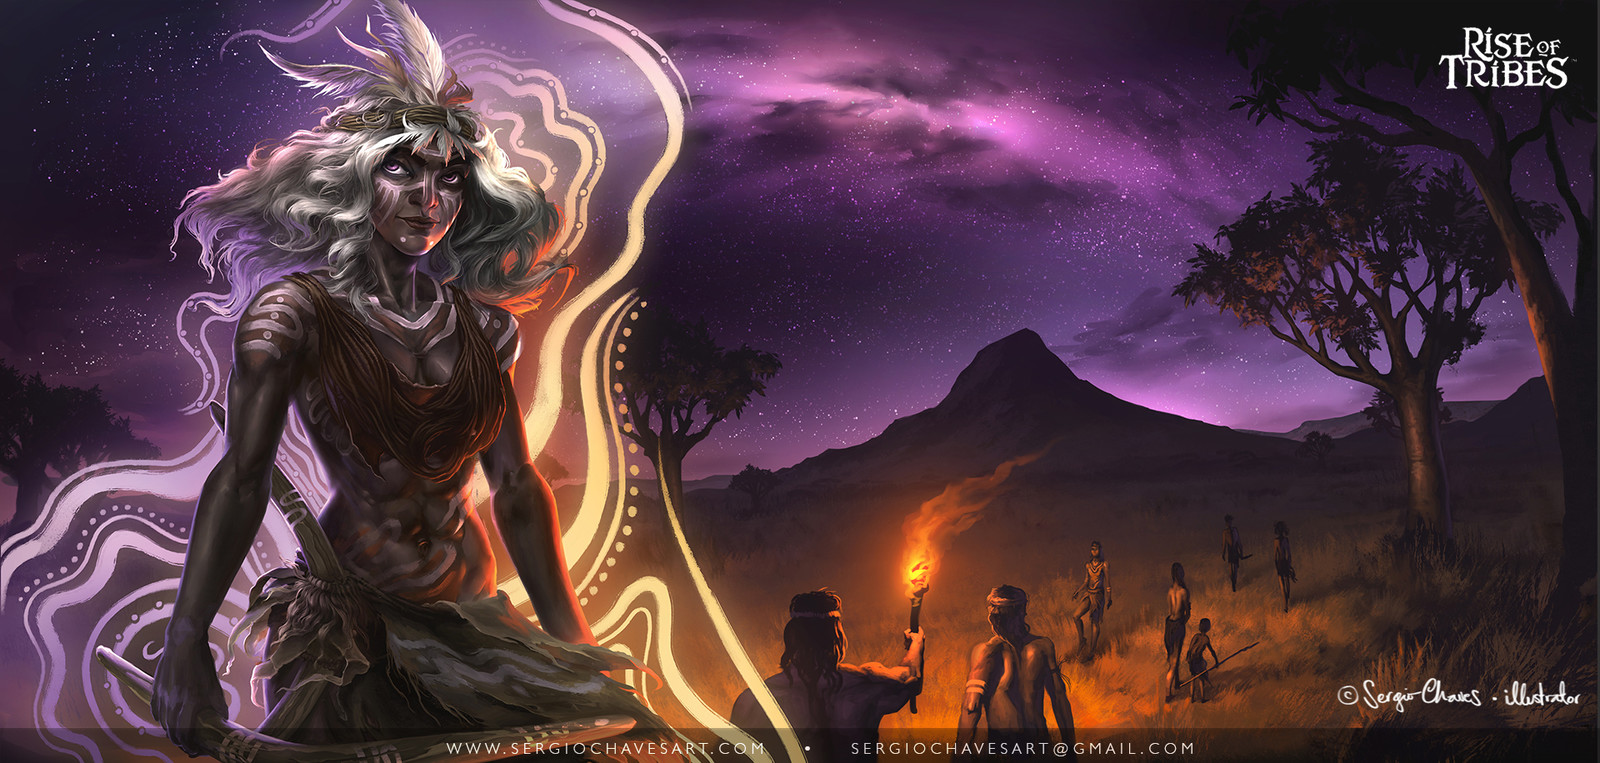 Kia-Kia Tribe - The Final art includes character and background. Gameplay instructions will be placed over the less busy part of the background.